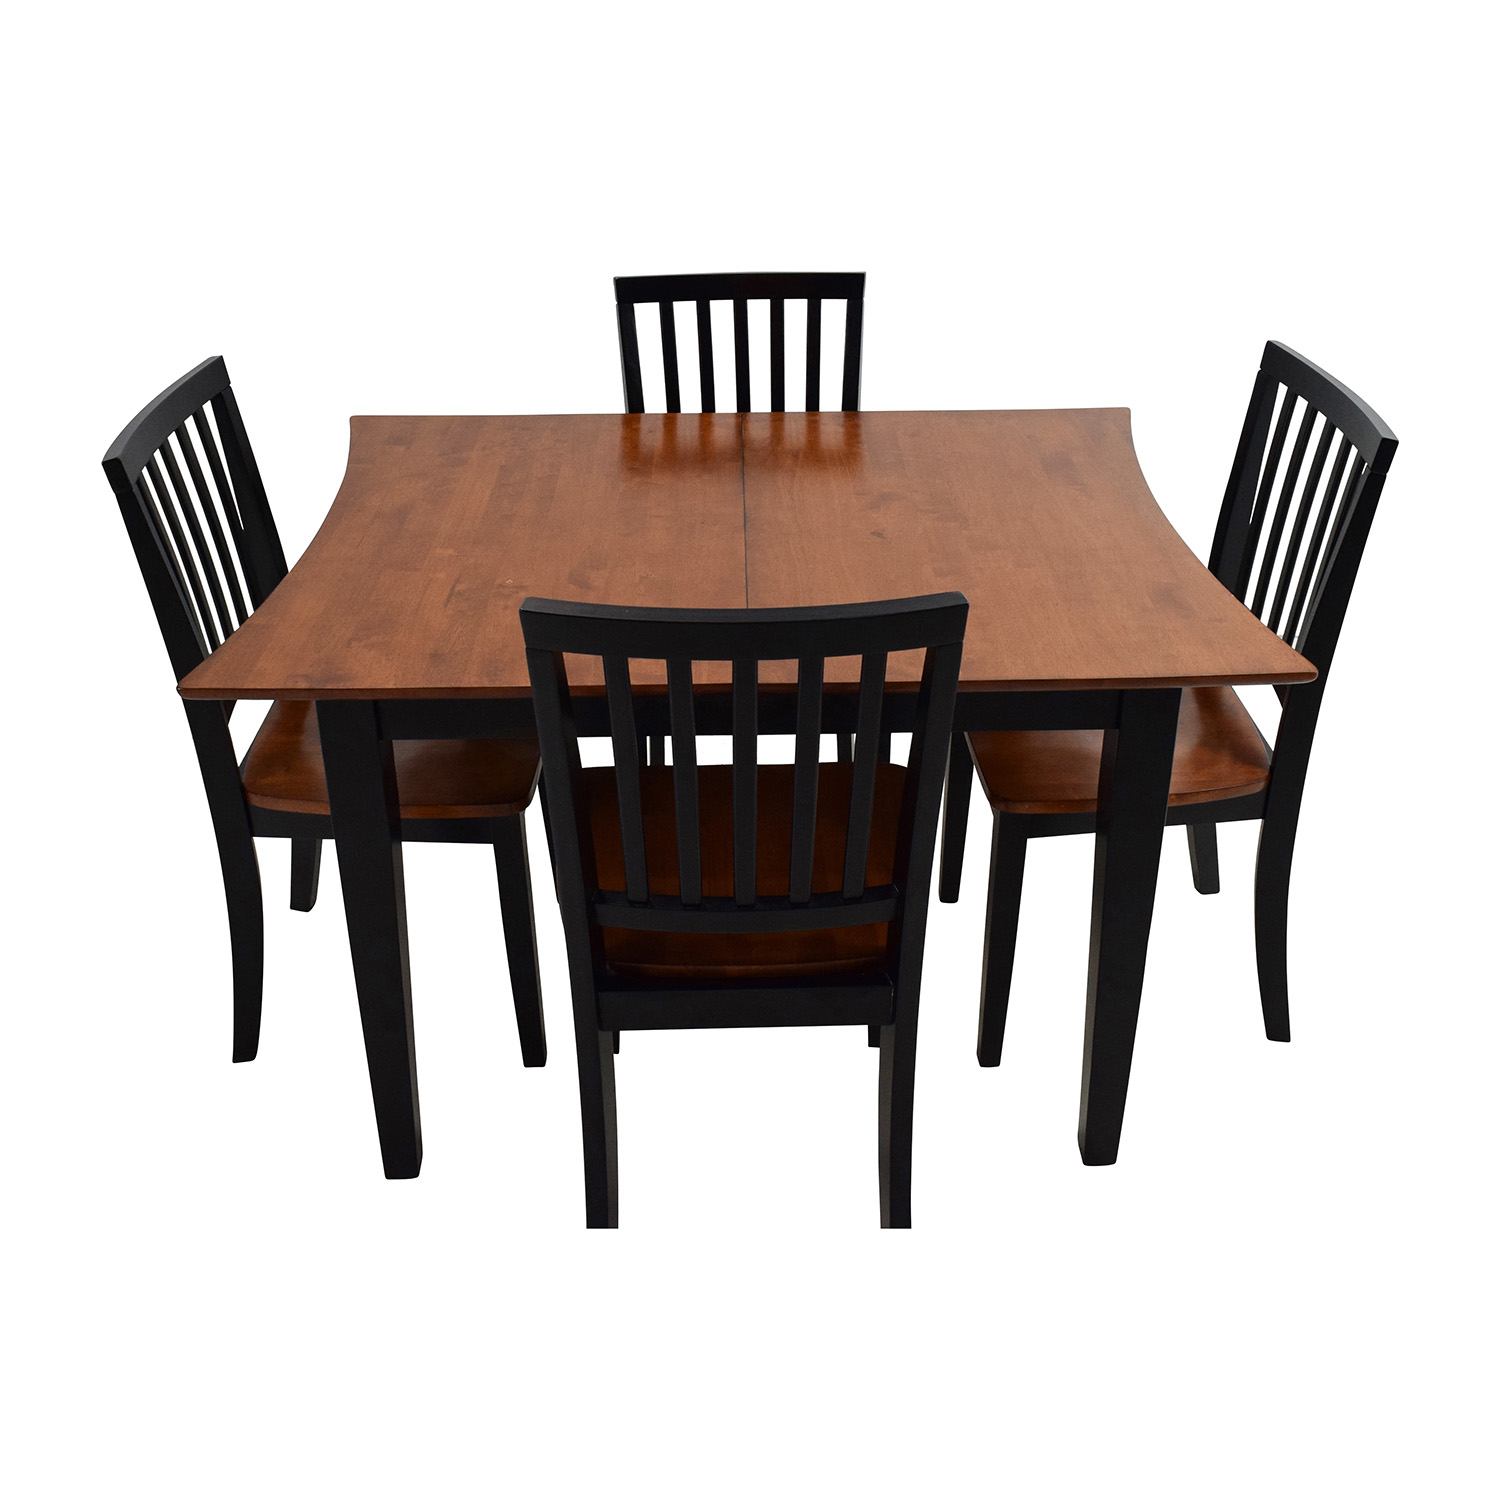 56 off bob 39 s discount furniture bob 39 s furniture for Furniture dining table